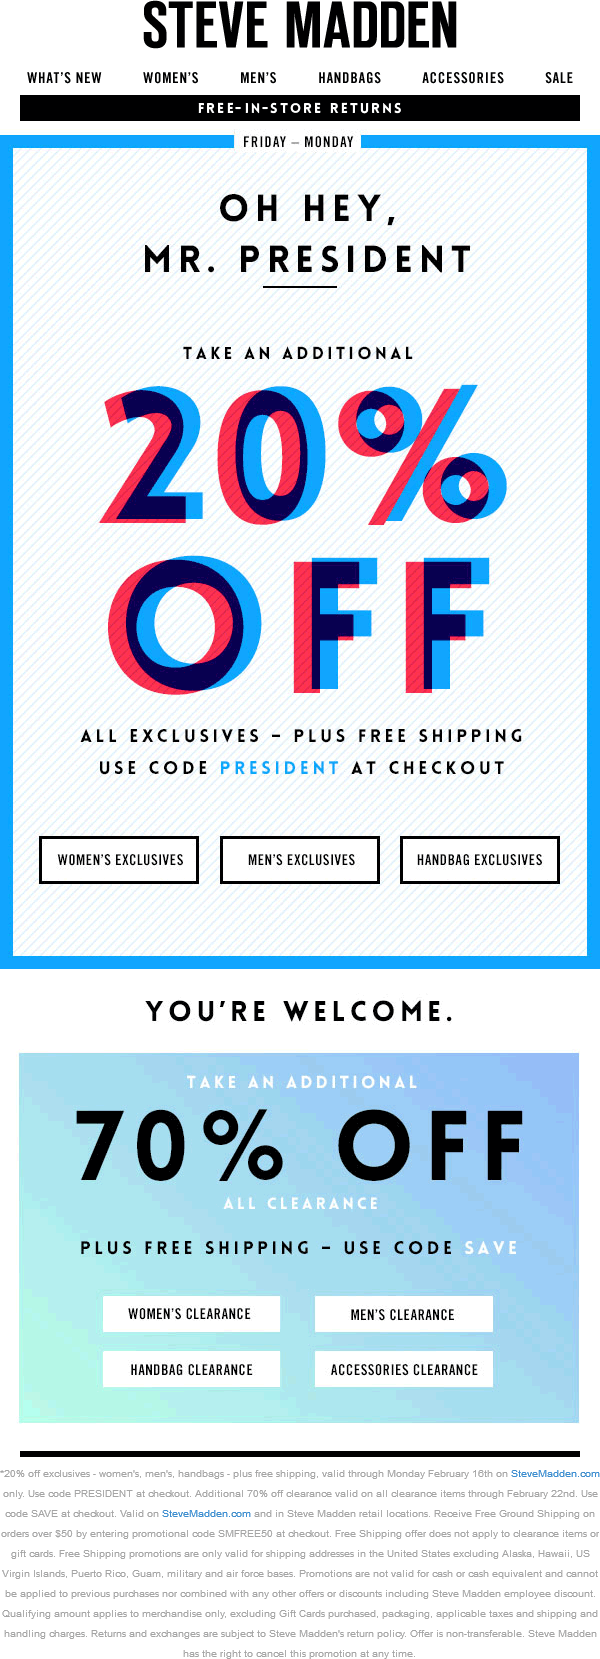 Steve Madden Coupon April 2017 Extra 70% off clearance & more online at Steve Madden via promo code SAVE